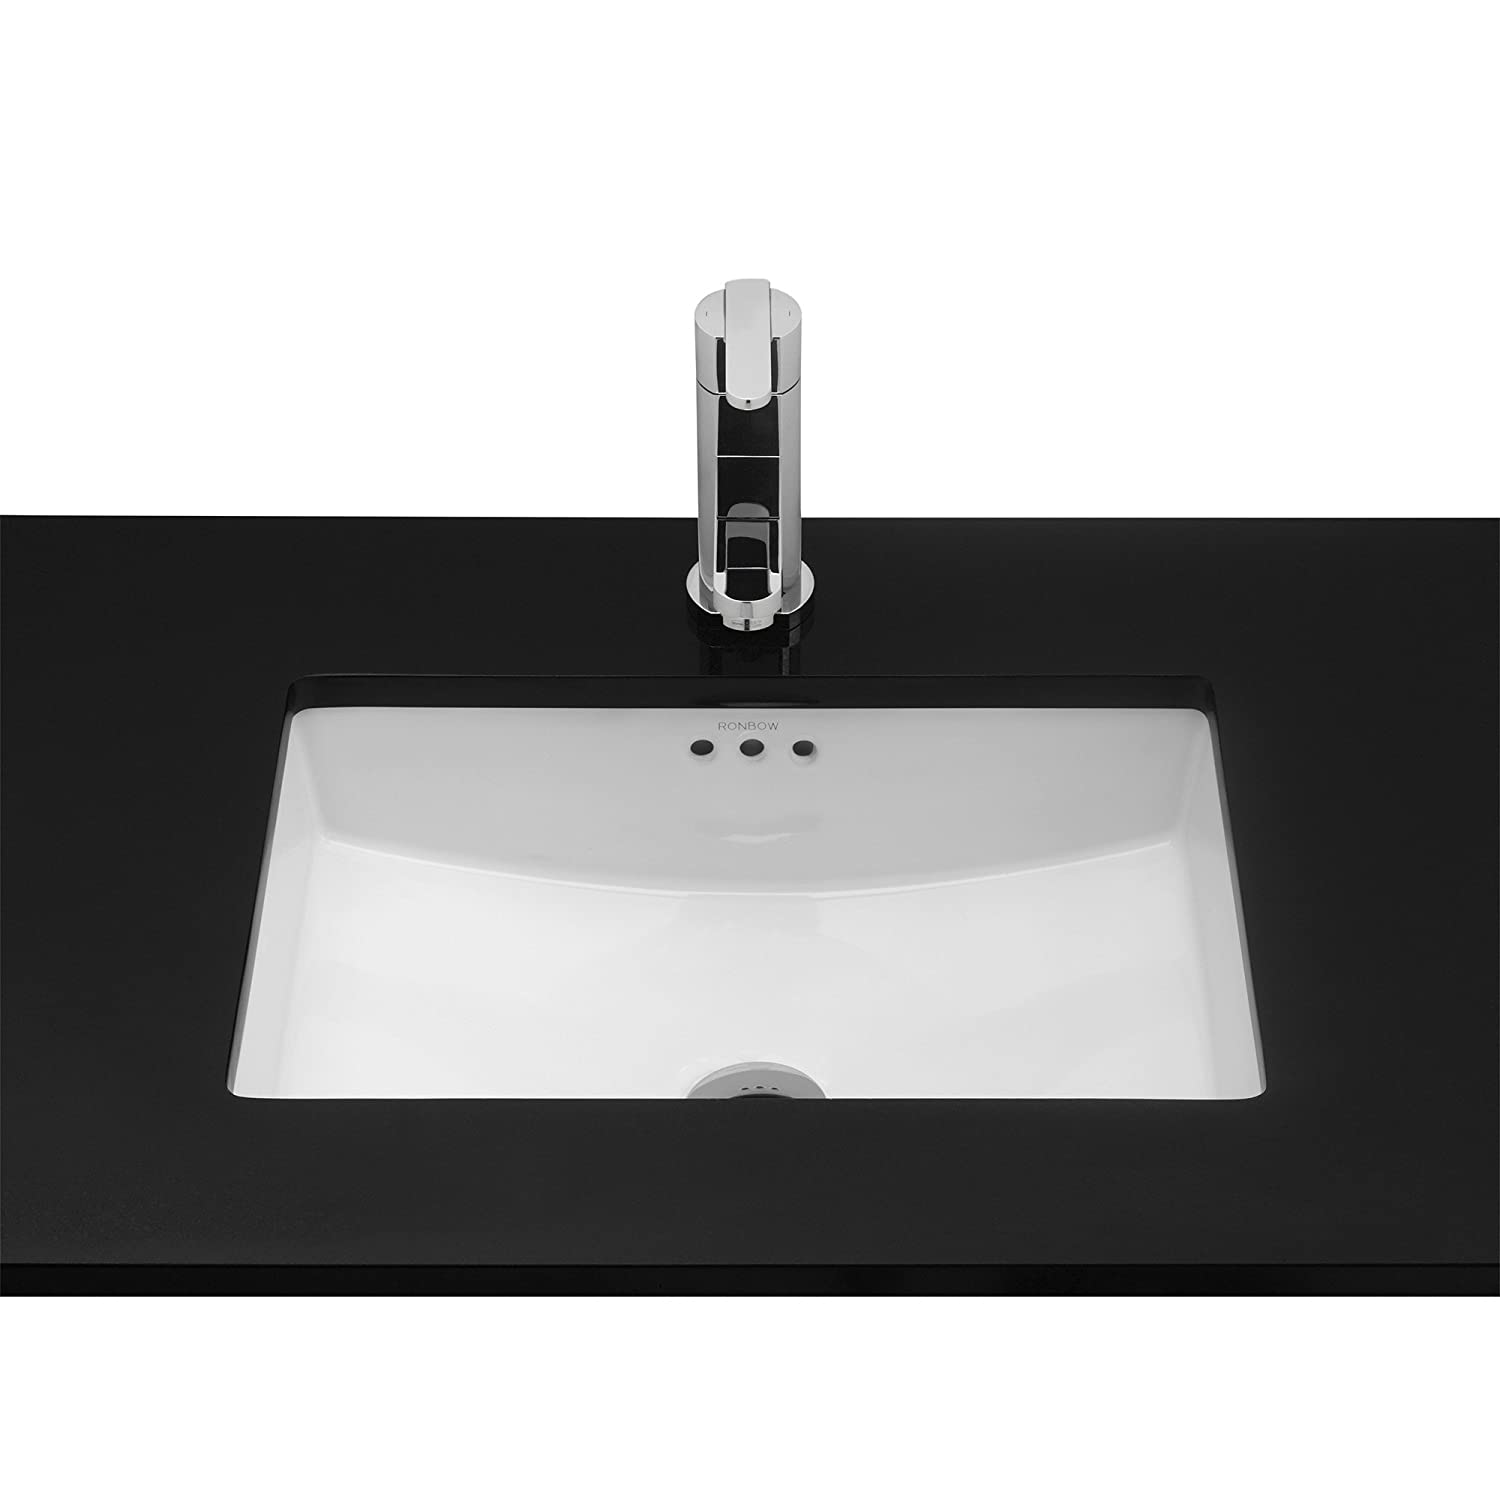 Bathroom sink rectangular - Ronbow 20 Inch Undermount Ceramic Vessel Bathroom Vanity Sink In White 200521 Wh Amazon Com